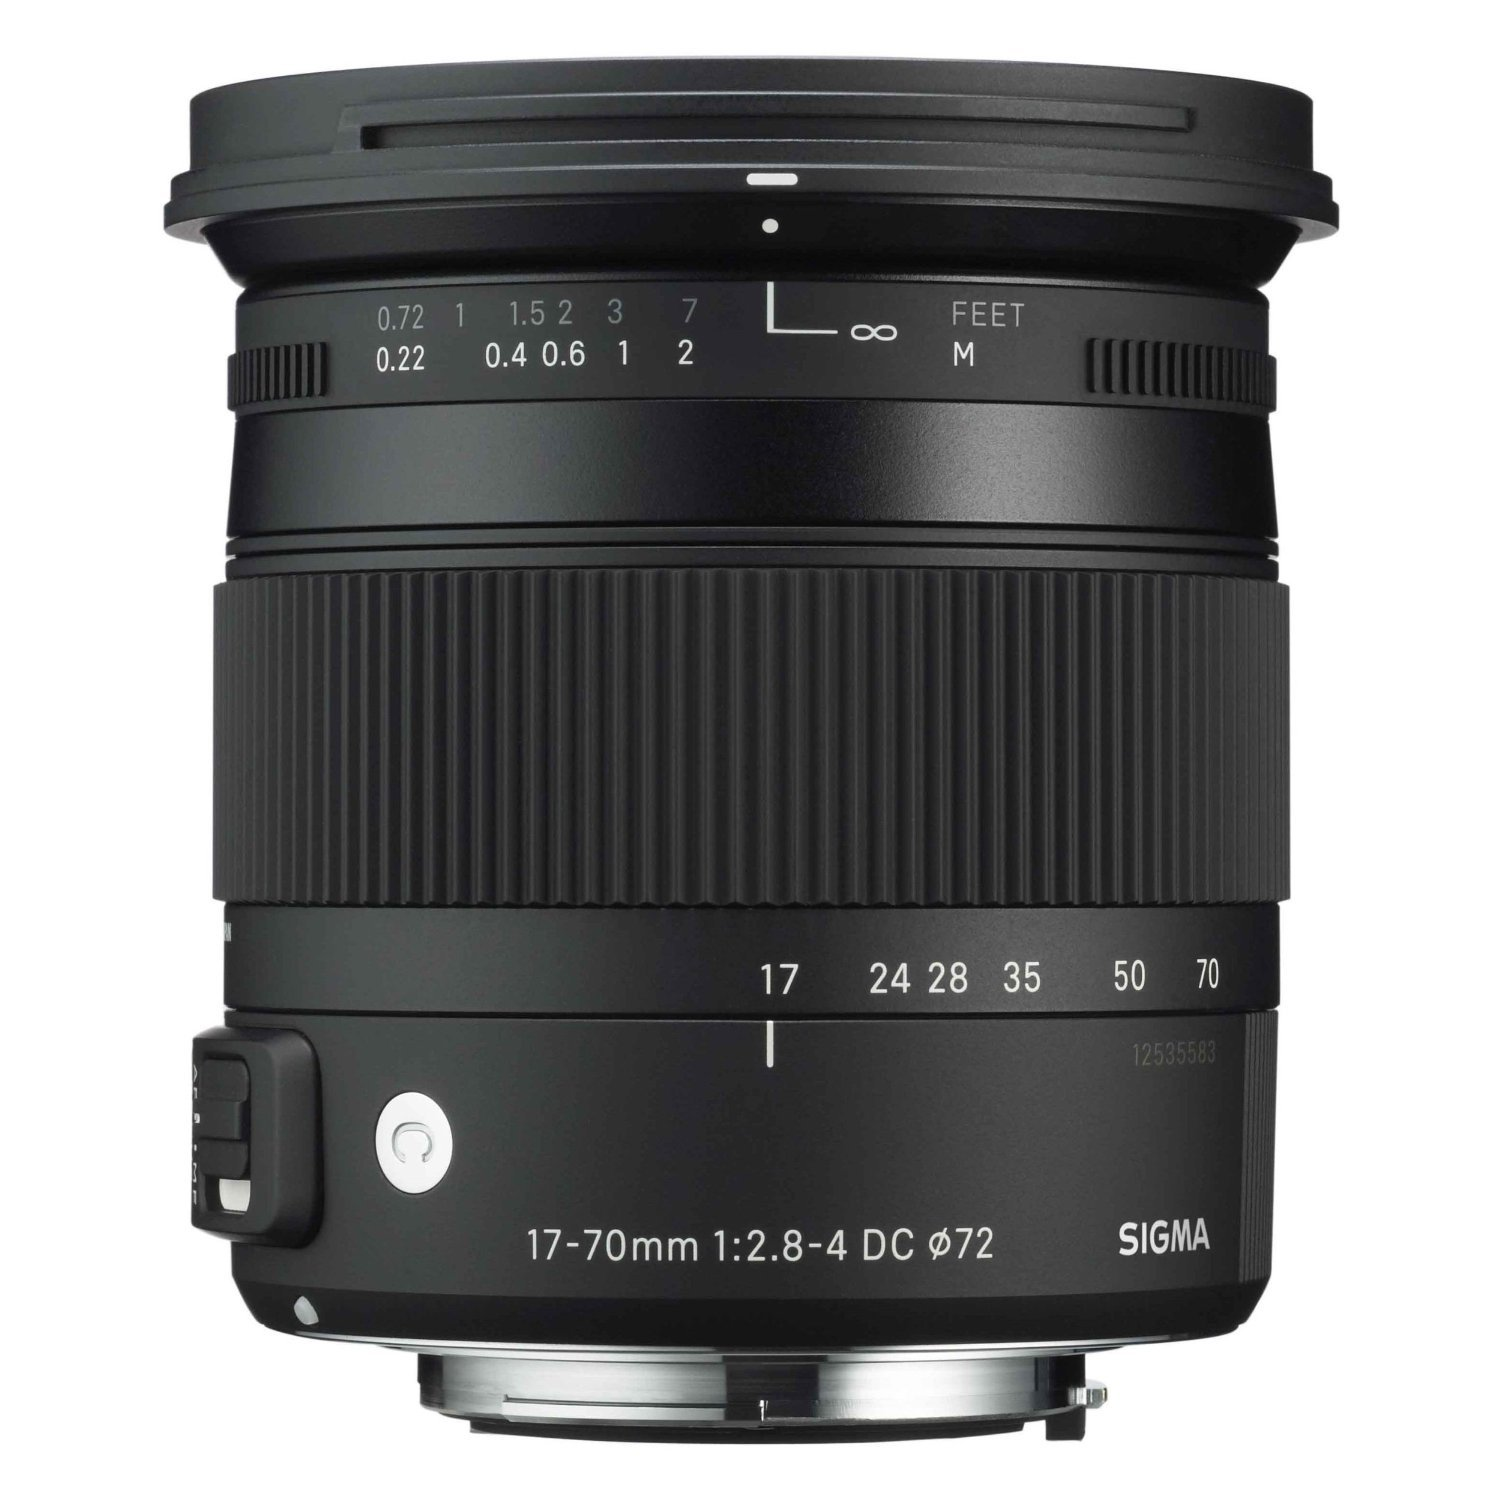 Sigma 884205 F2.8-4 Contemporary DC Macro OS HSM 17-70mm Fixed Lens for Sony Alpha Cameras by Opteka